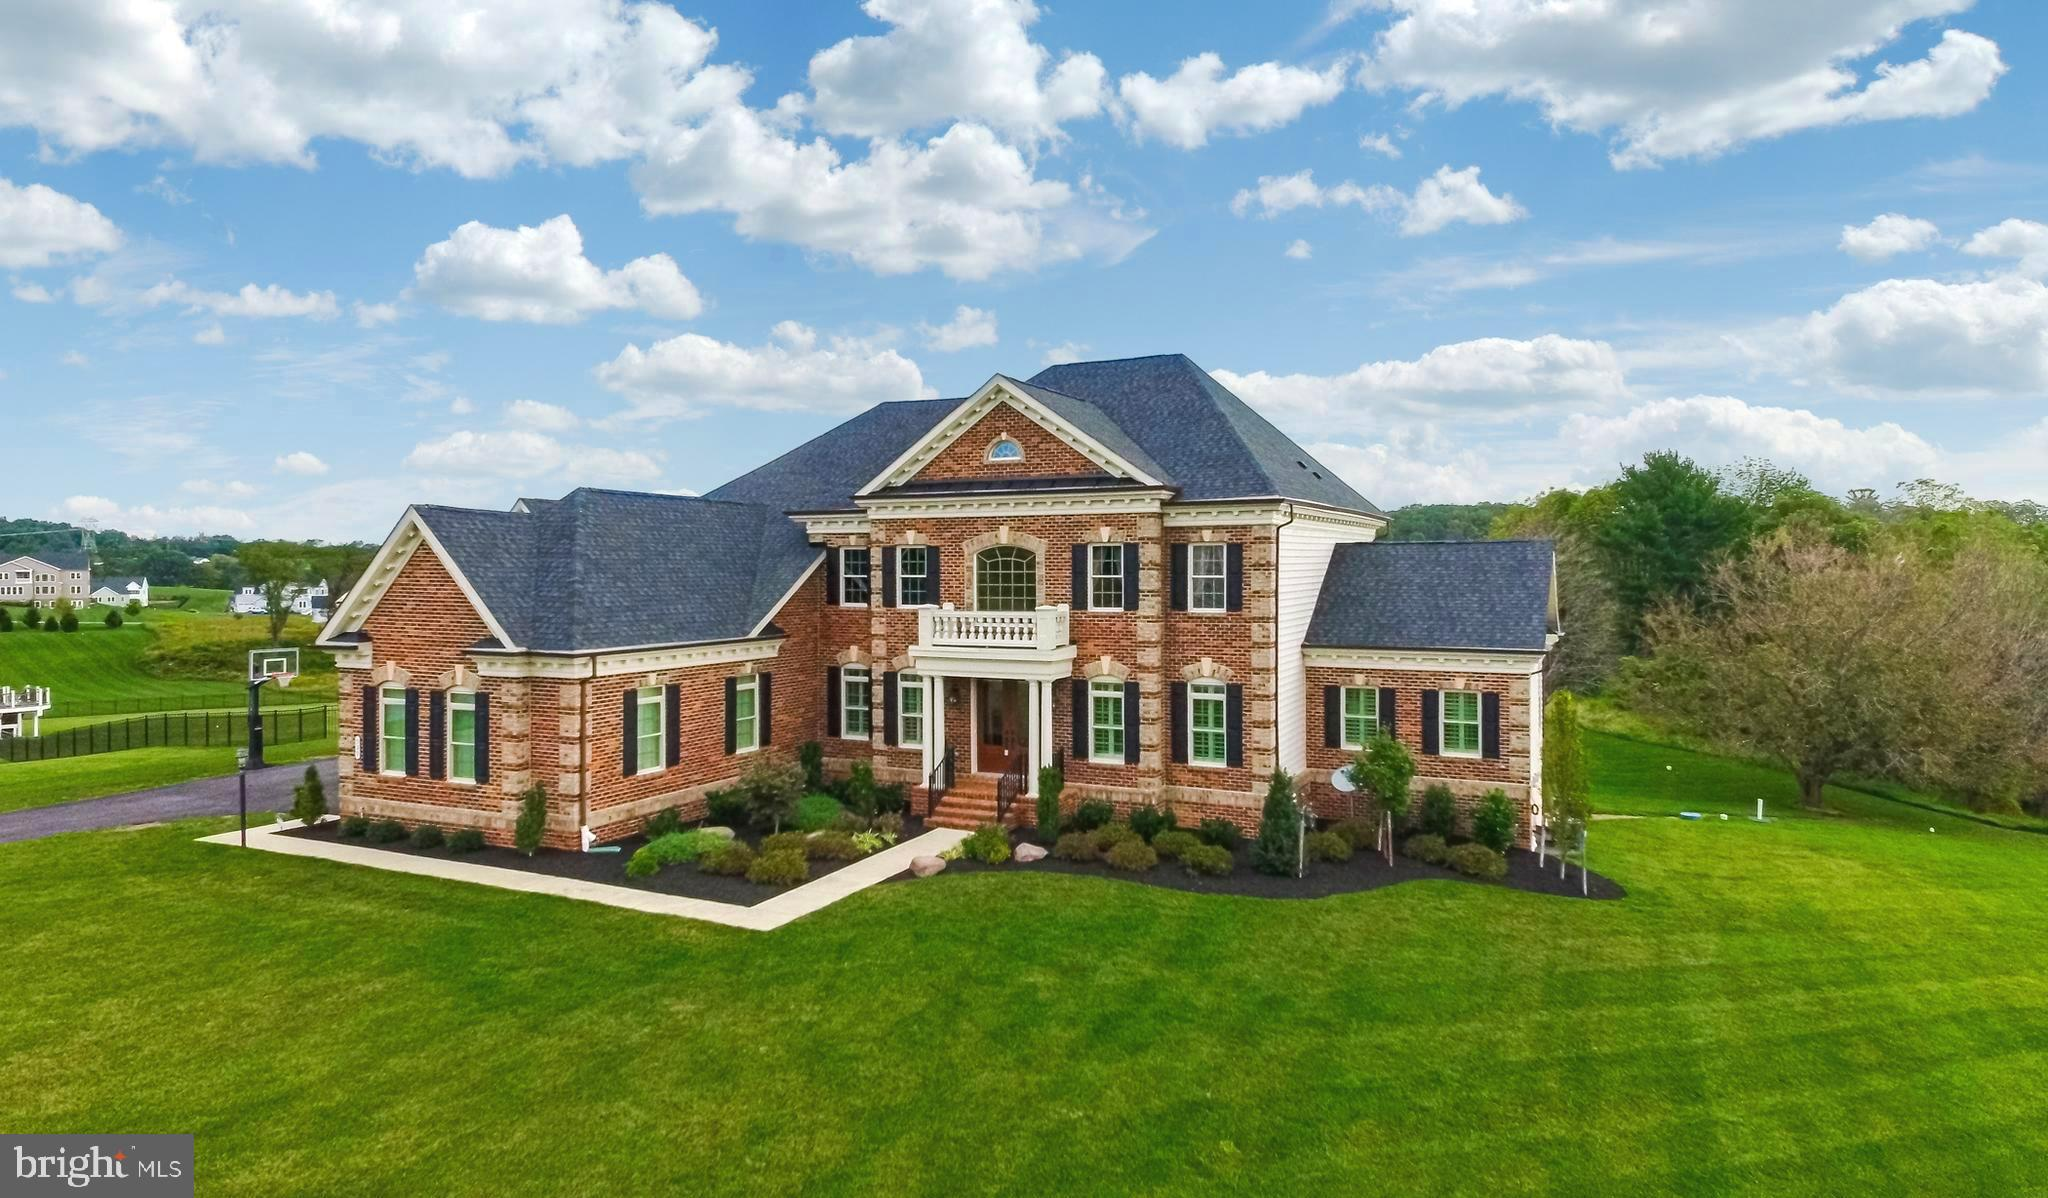 This Magnificent and Stately All Brick Colonial Perfectly Placed on a Lush 2 Acre Lot with Attached